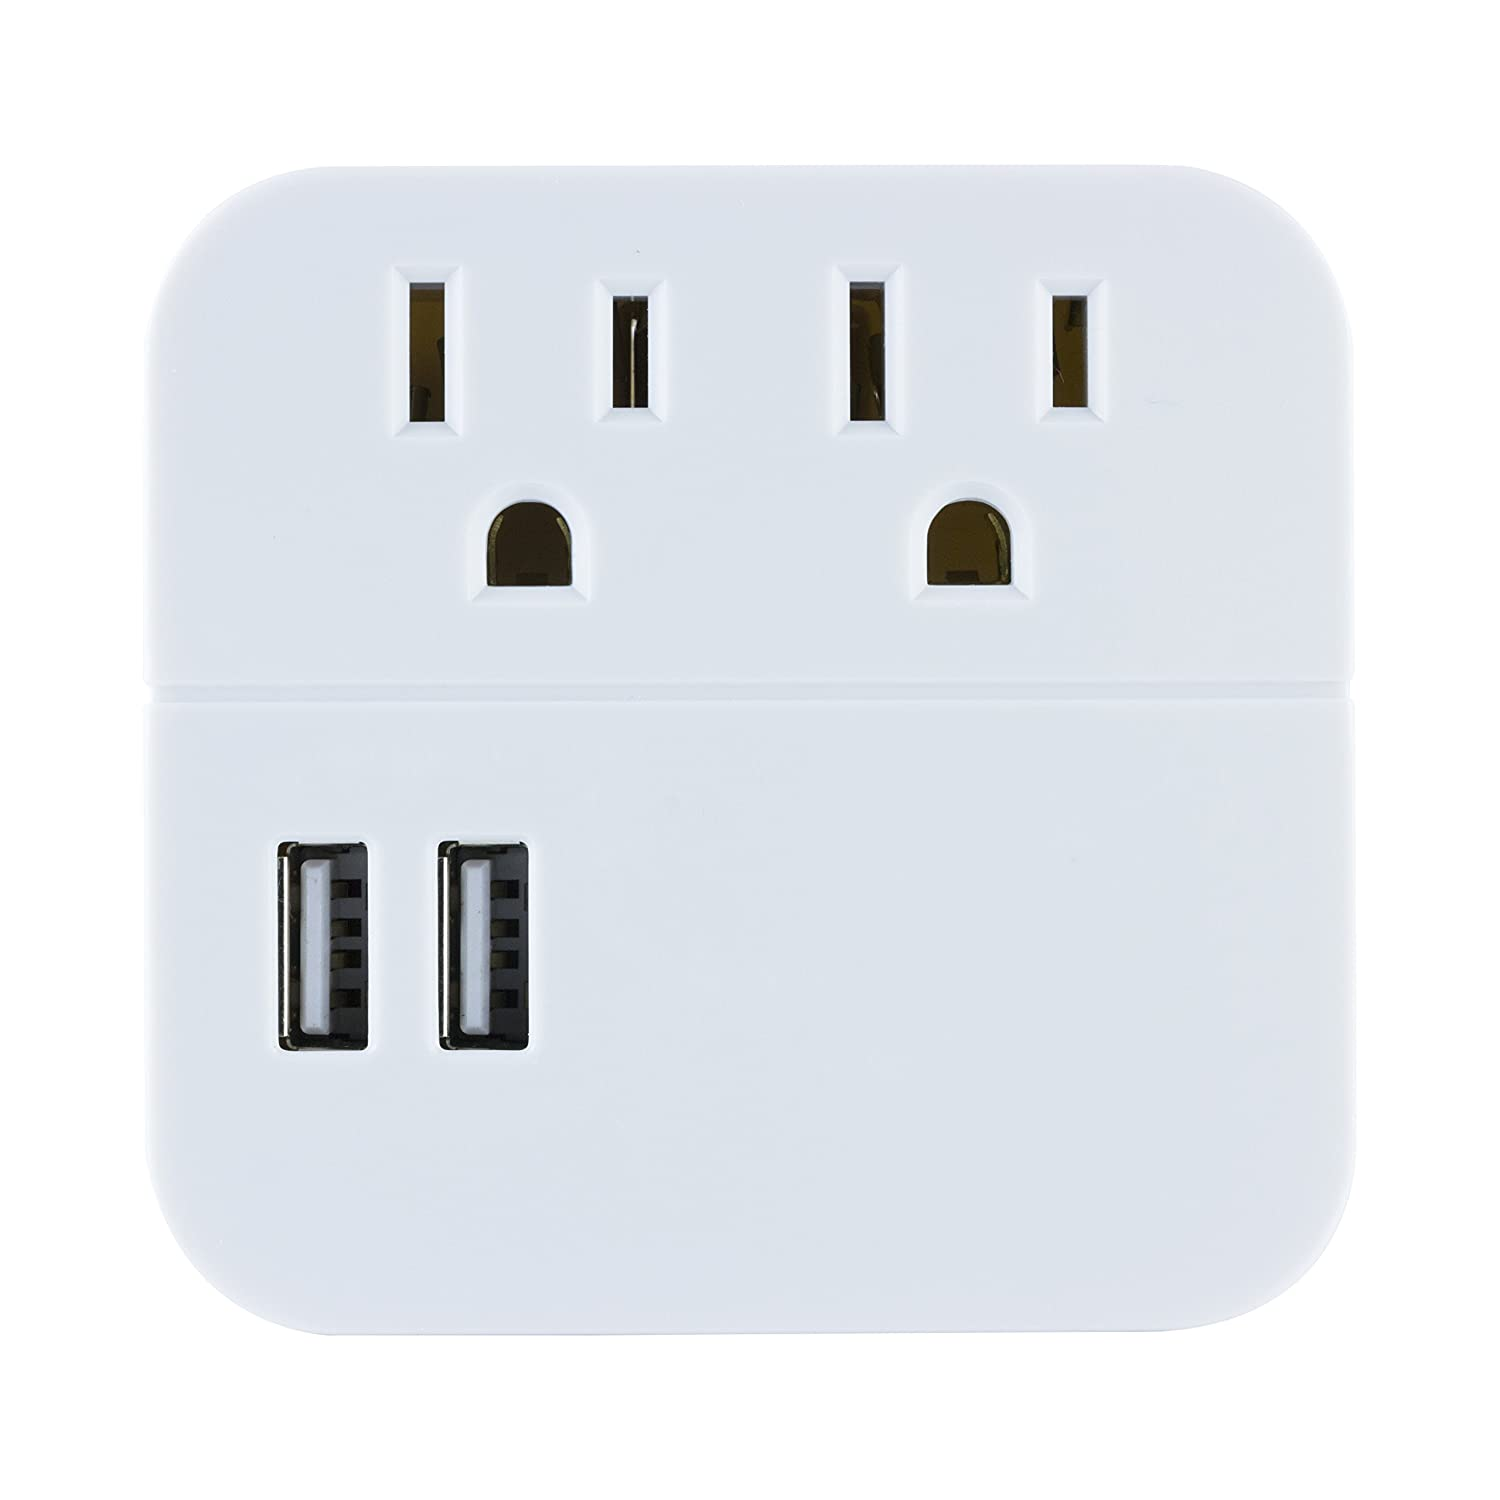 GE 2 Outlet 2 USB Surge Protector Wall Tap, Charging Station, Wall Plug Adapter, Dual USB Tablet and Cell Phone Charger, 120V/15A/180WW, 280 Joules, UL Listed, White, 37144